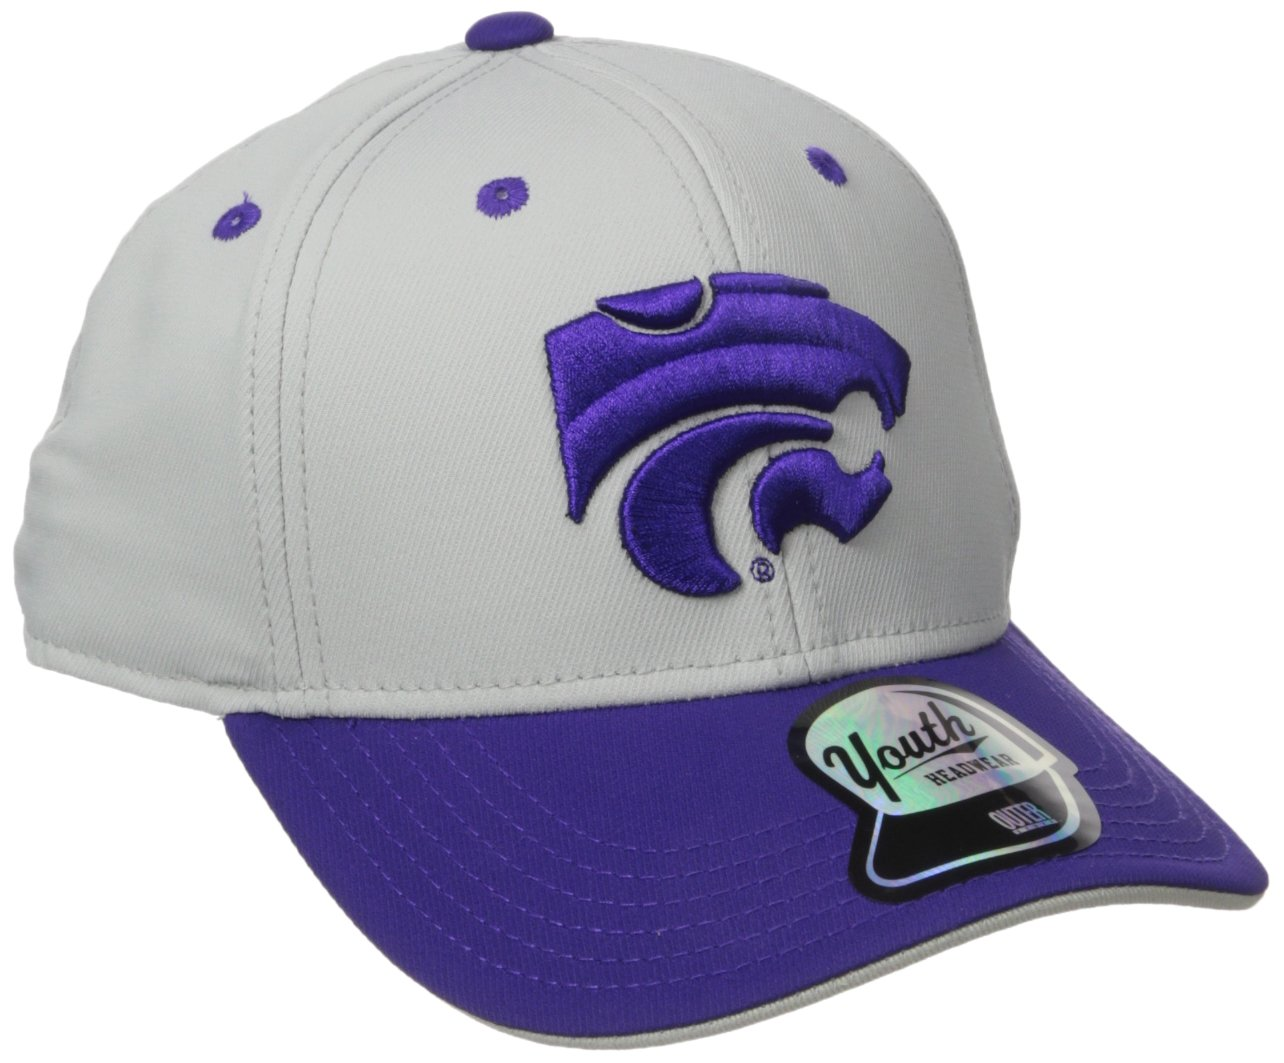 Gen 2 NCAA Youth Boysパフォーマンススナップバックハット B073ZZFLFD Kansas State Wildcats Youth Boys One Size